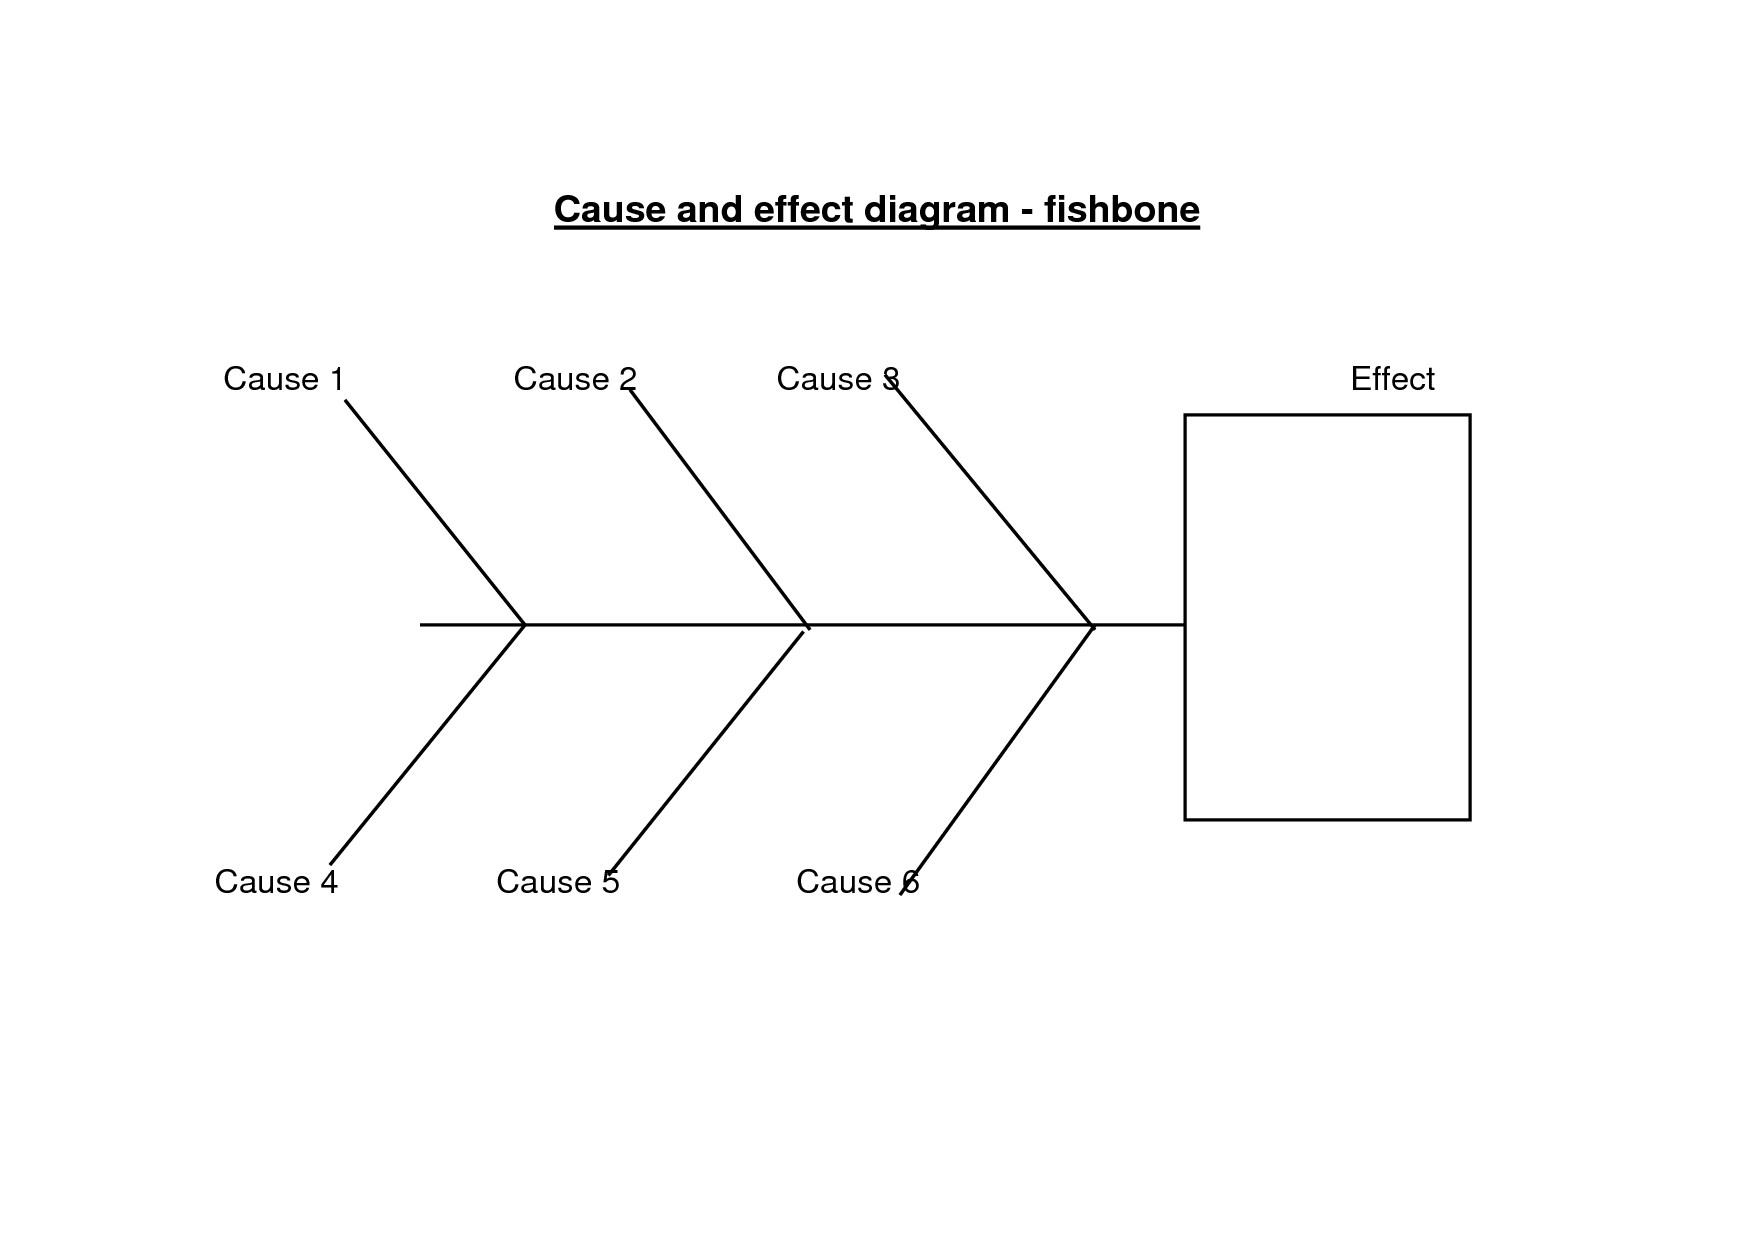 Cause And Effect Diagram Template Fishbone Lab Diagram Template This Is The 2nd Fishbone Overview Of